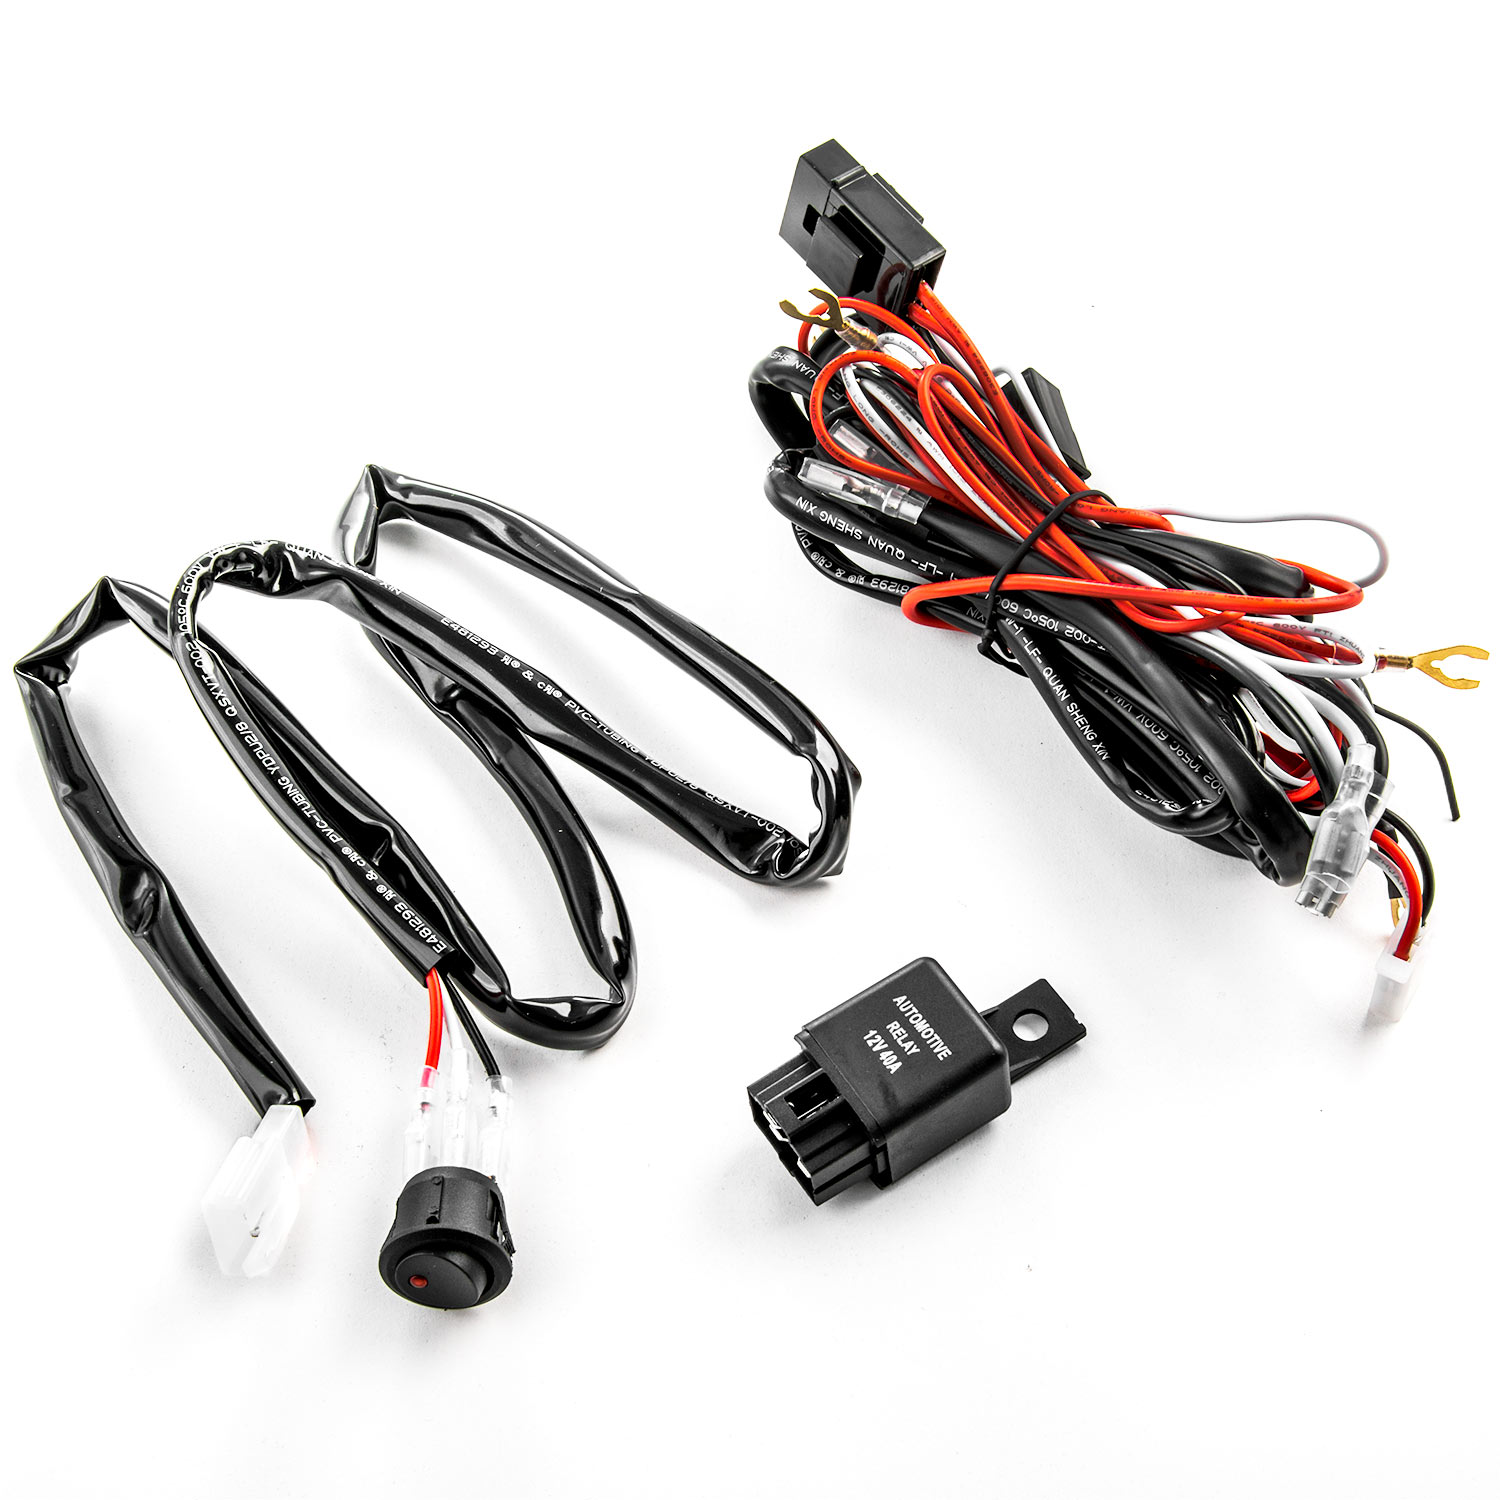 Universal Fog Light Wiring Harness Ebay Library Curving Led Diagram For Use Kit Driving Lamp Fuse Switch Relay